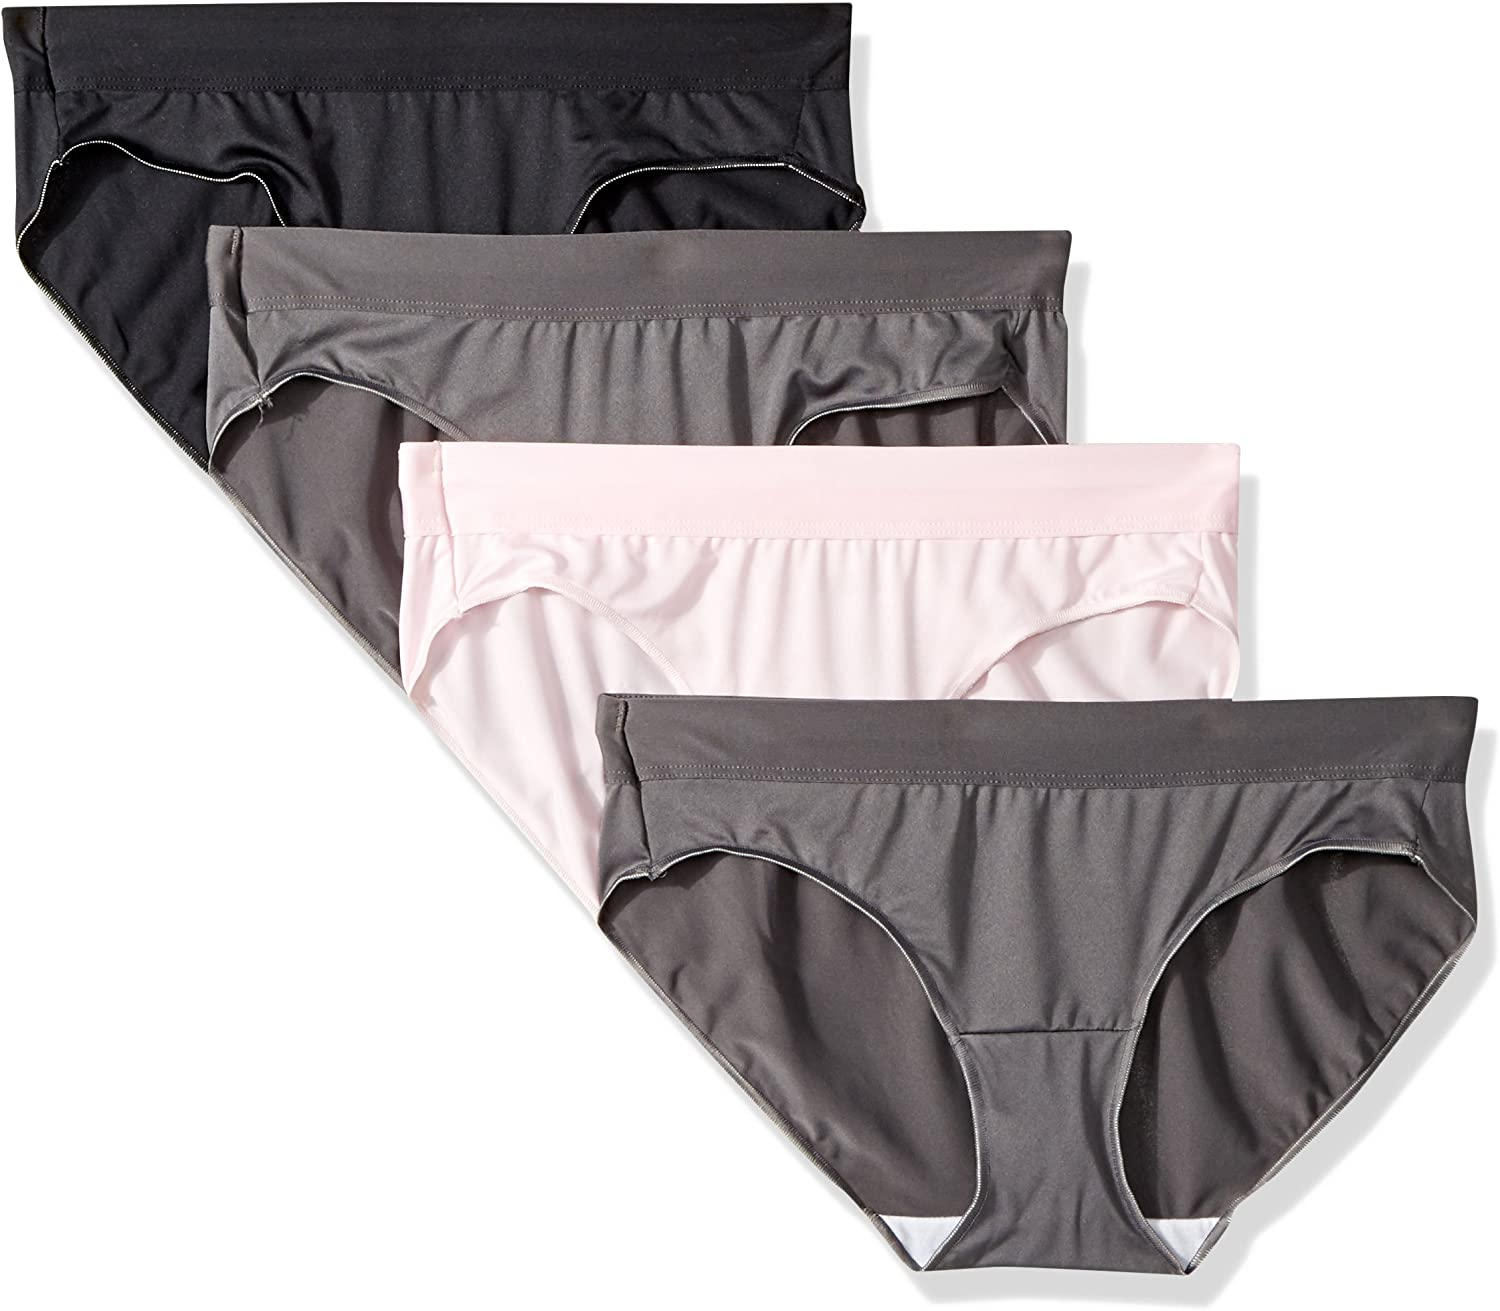 Hanes Women/'s Invisible Lace Microfiber Hipster Panties 3-Pack Size 5 OR 7